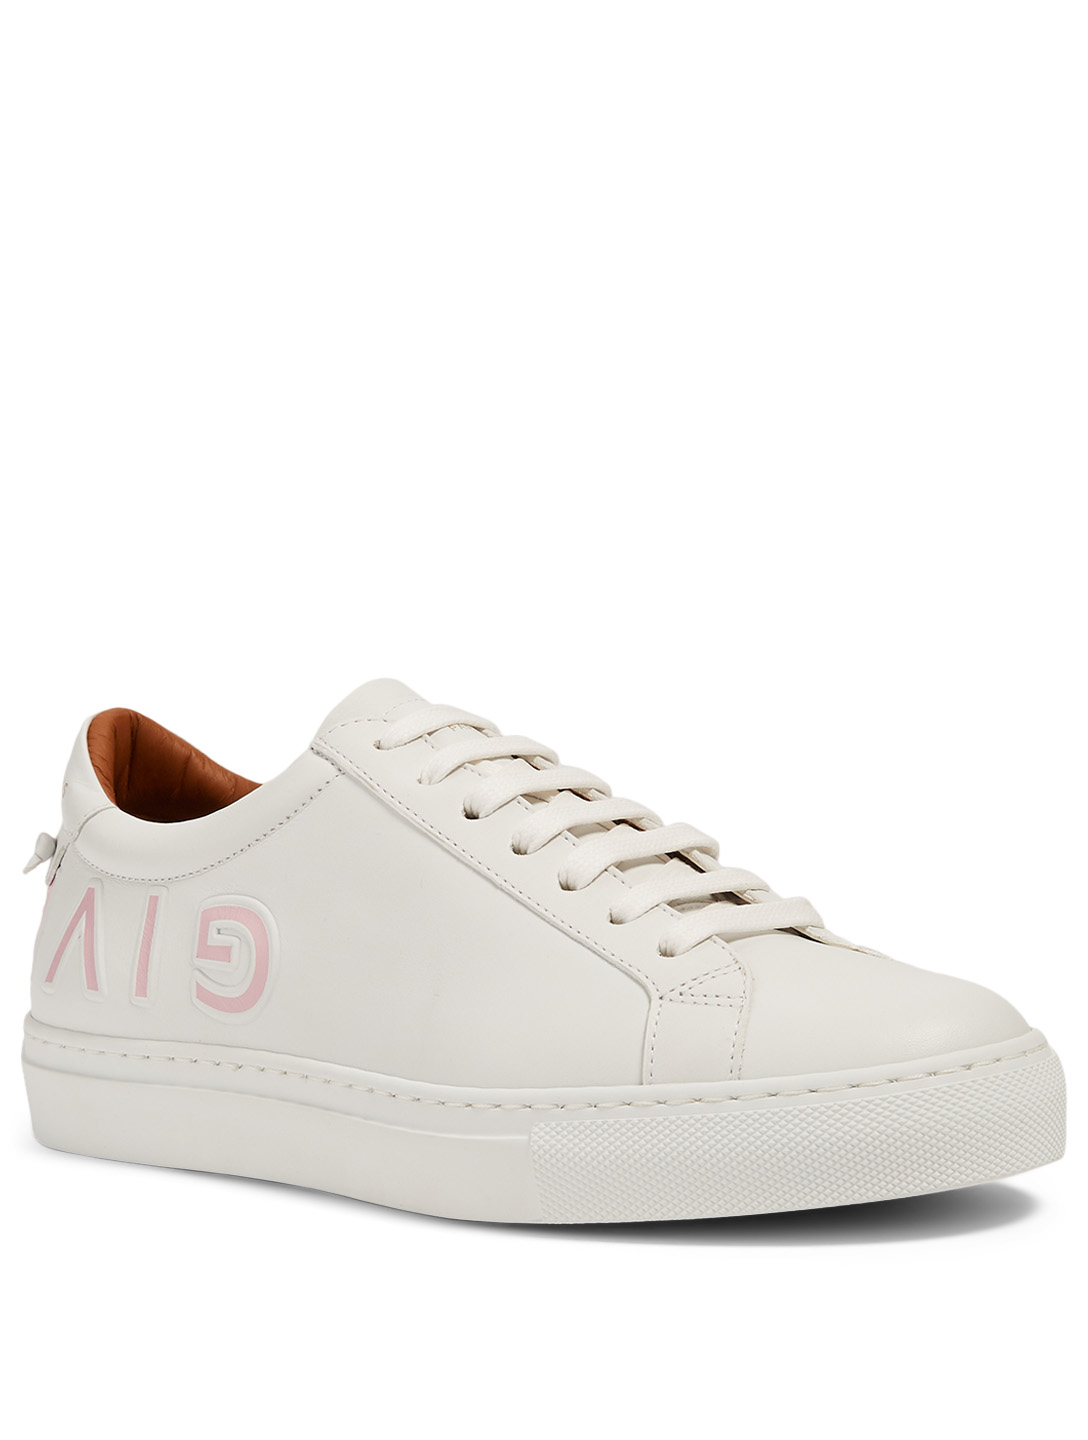 GIVENCHY Urban Street Leather Reverse Logo Sneakers Women's Pink